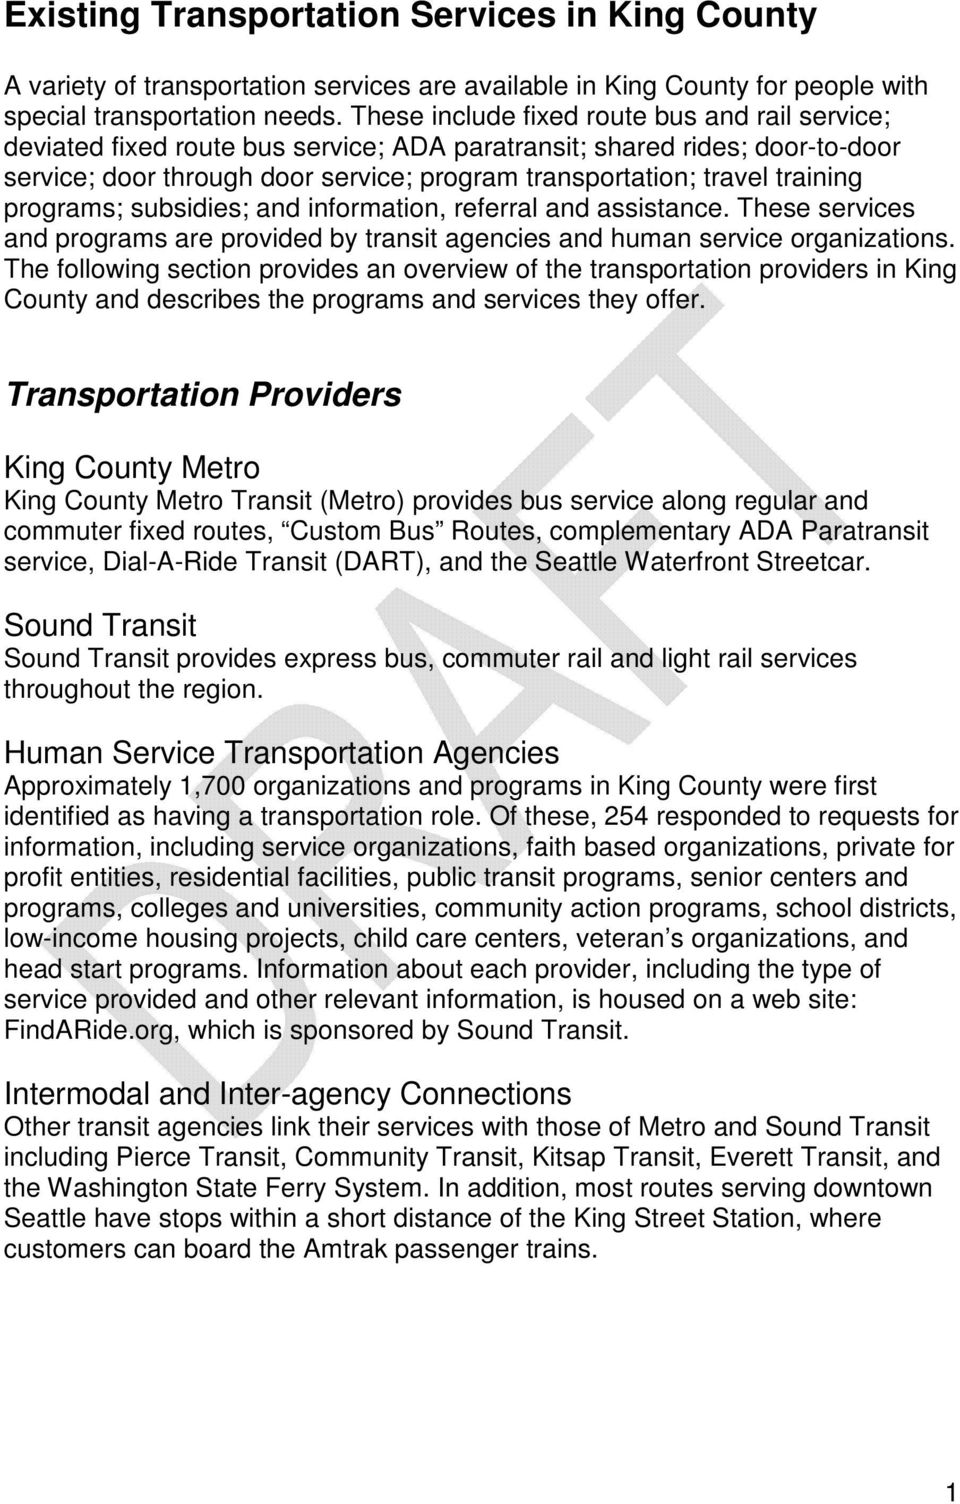 training programs; subsidies; and information, referral and assistance. These services and programs are provided by transit agencies and human service organizations.